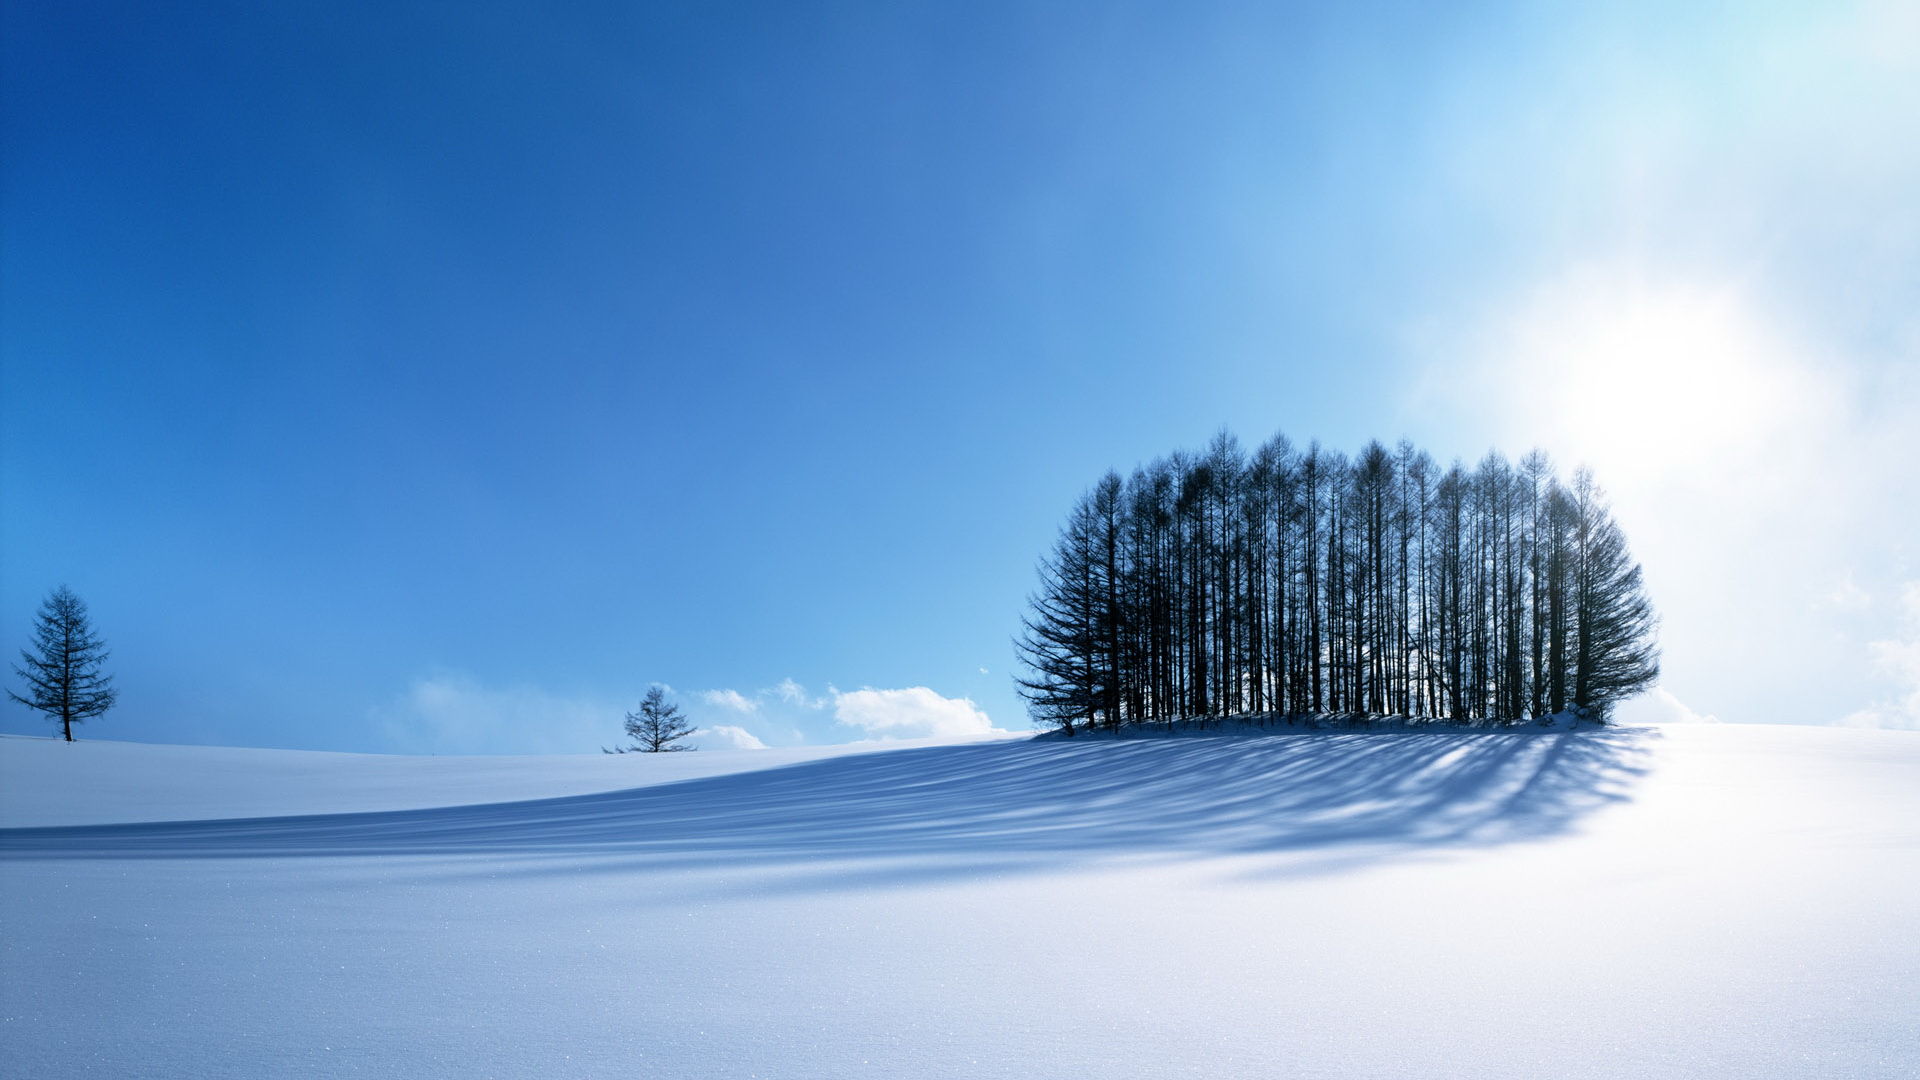 click to free download the wallpaper--Pics of Snowy Scene - No Footsteps, a Pure World Under the Blue Sky, Everything is Fine 1920X1080 free wallpaper download